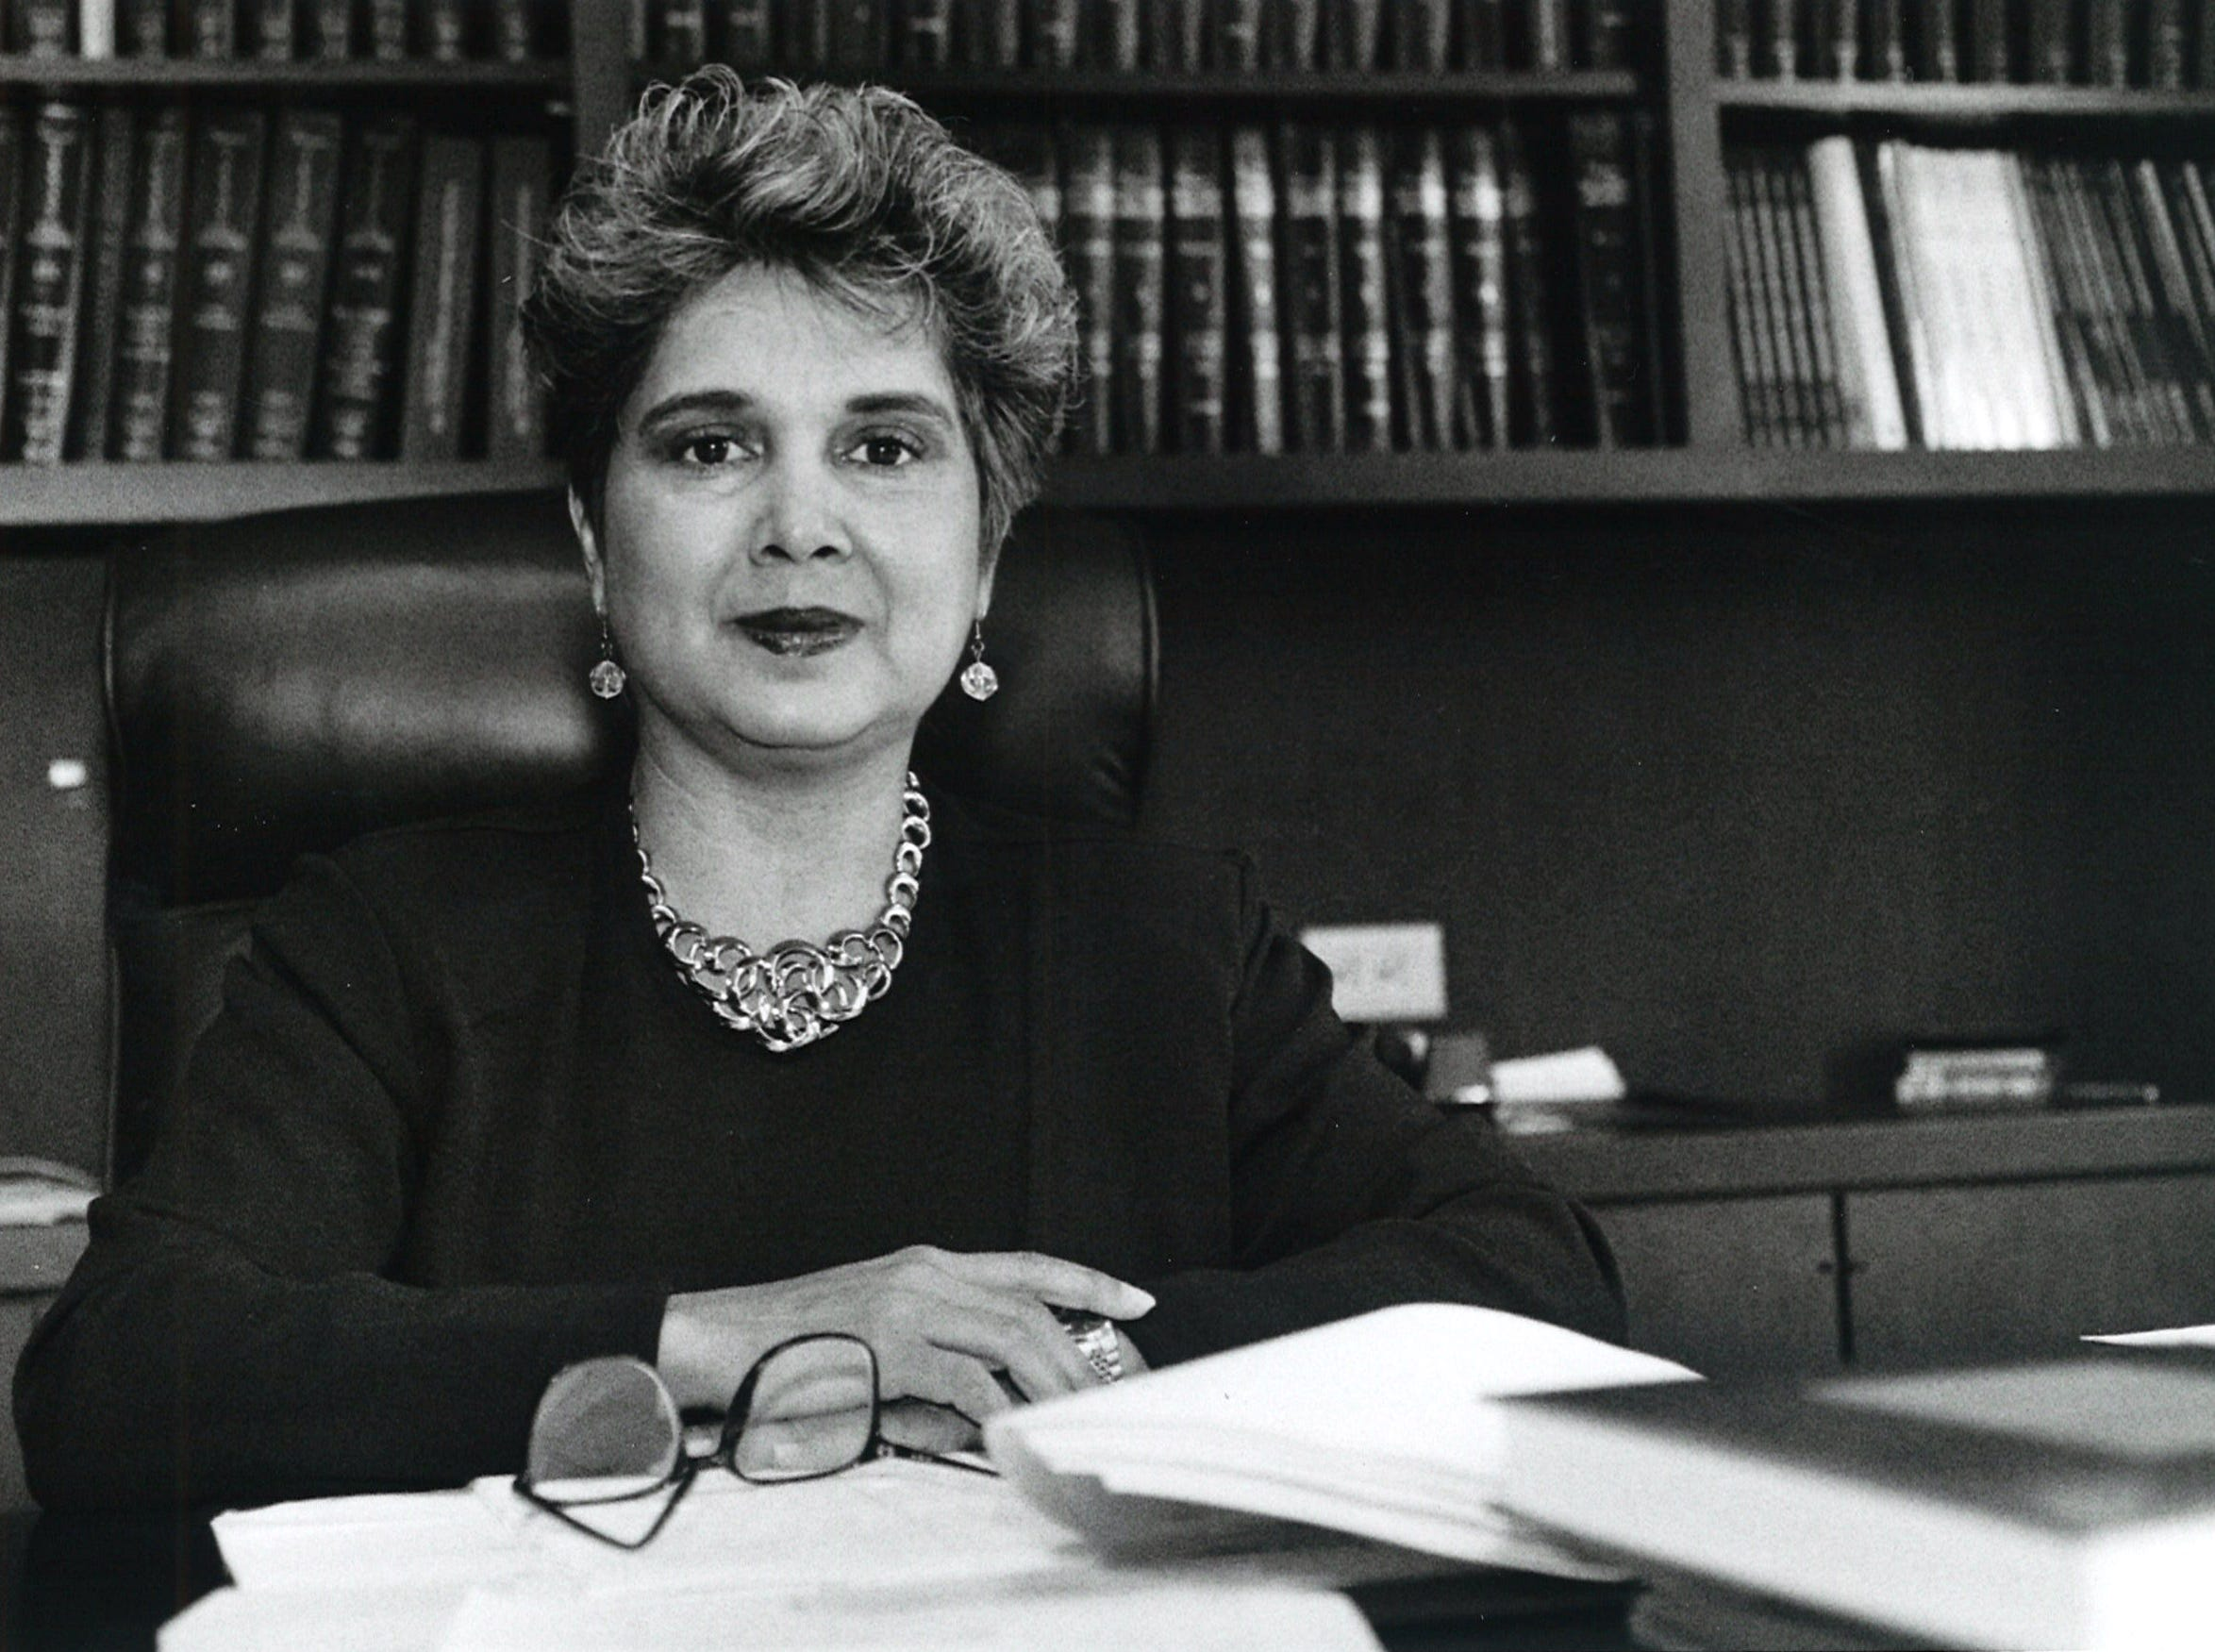 Justice Linda Reyna Yanez in September 1993. She was the first woman to serve as a justice on the 13th Court of Appeals of Texas and was the firstand only Hispanicwoman sitting on a Texas appellate bench at thetime of her appointment.